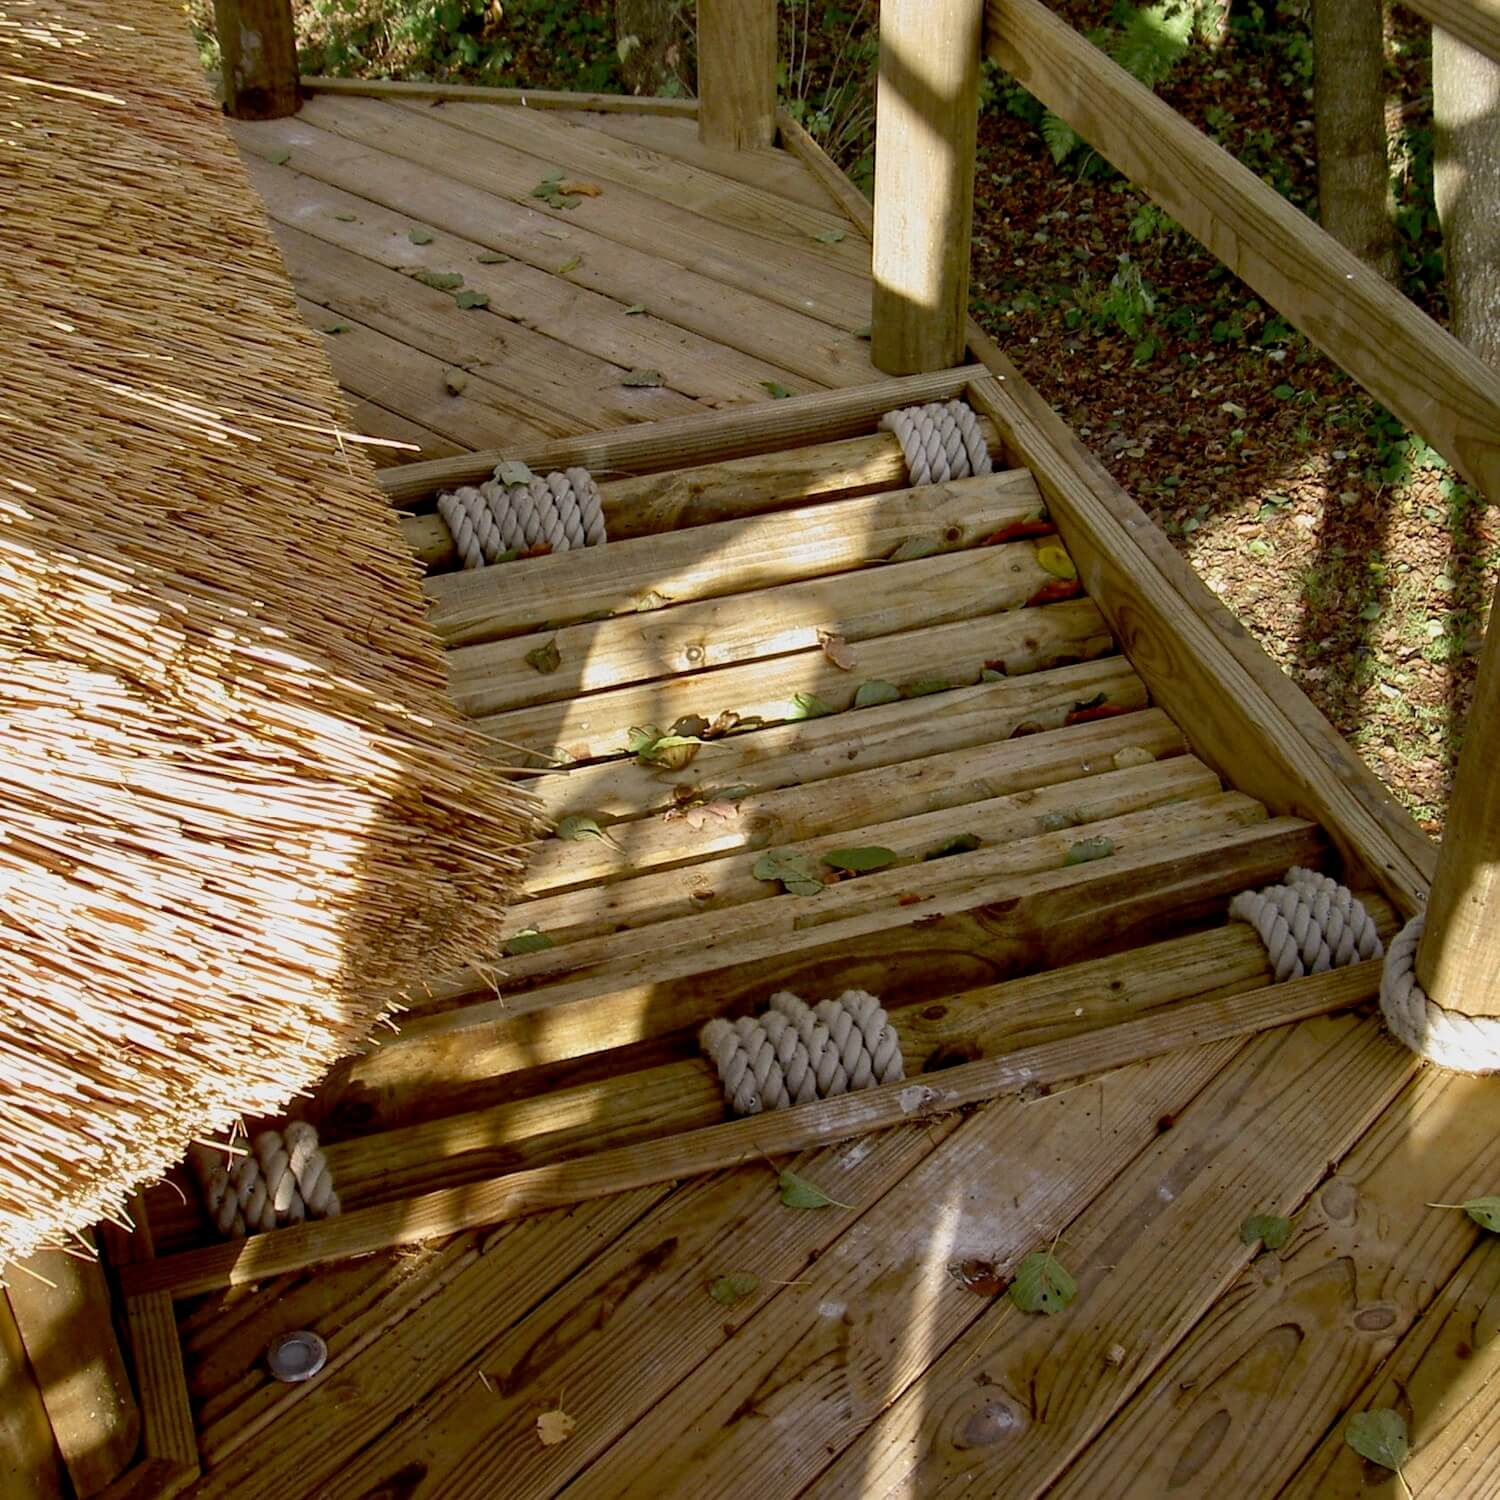 Wobbly Bridge incorporated into a treehouse deck